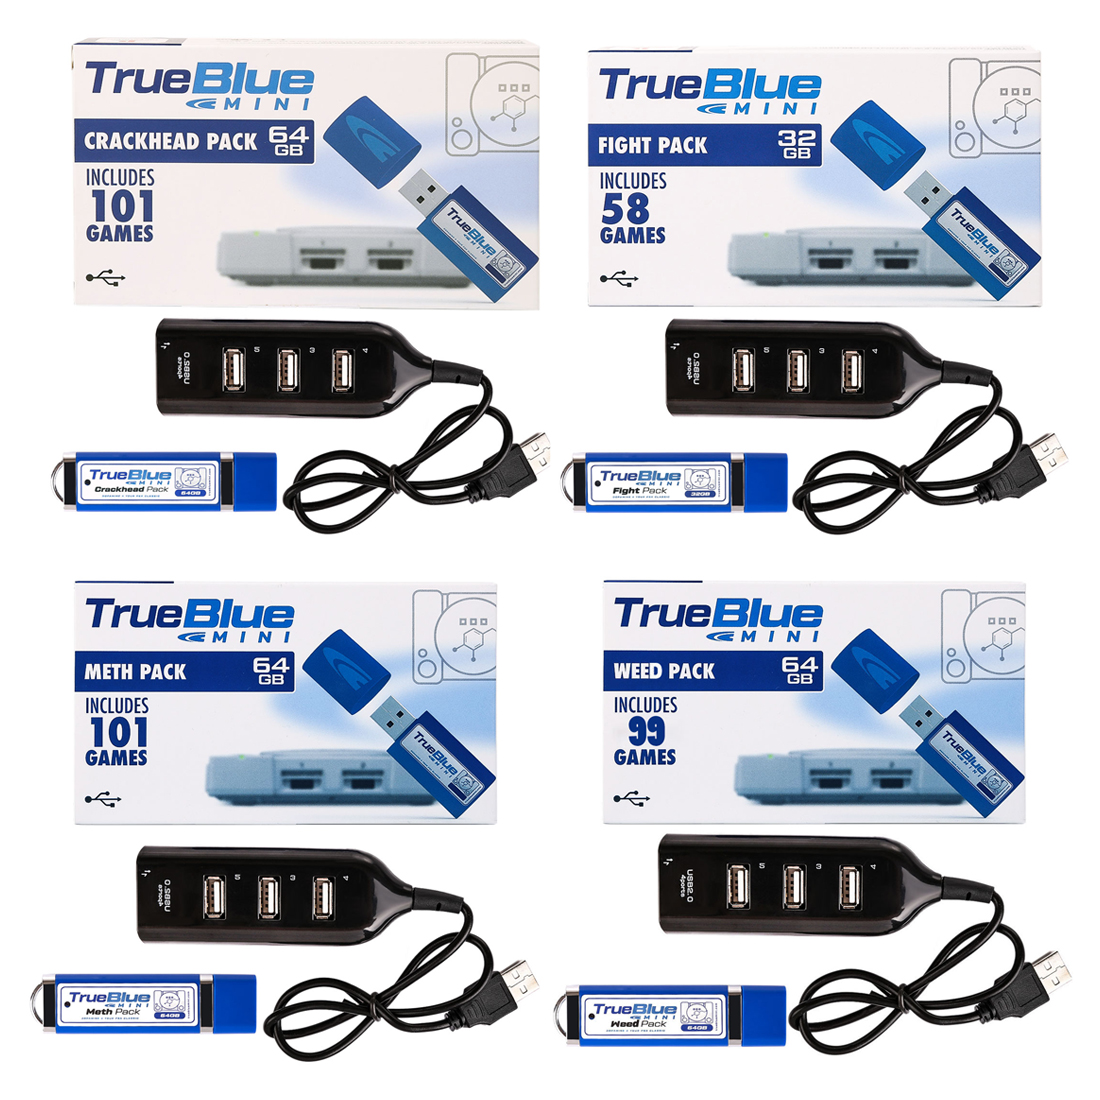 4-Pack True Blue Mini USB Sticks for Playstation Classic (Crackhead Pack + Meth Pack + Fight Pack + Weed Pack) Christmas Gift